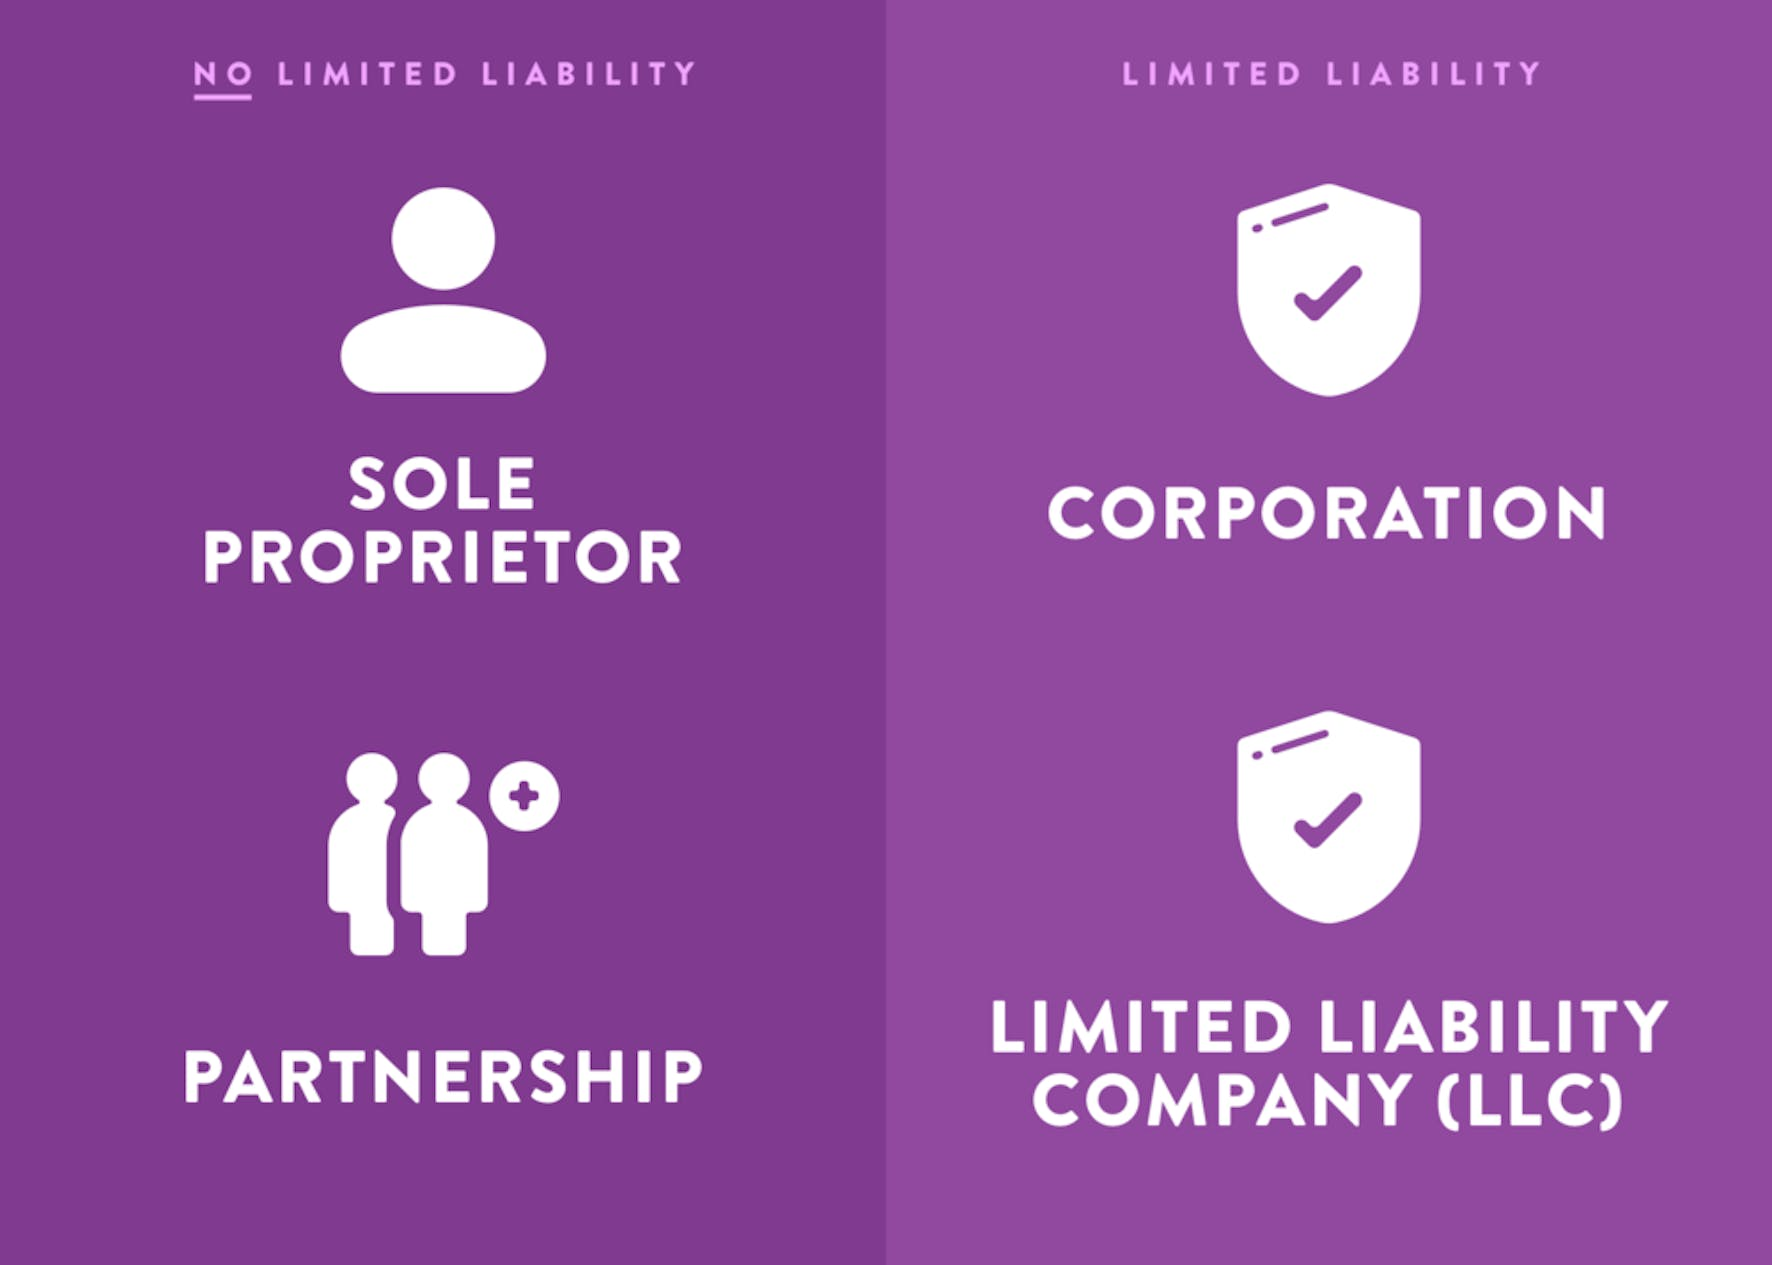 LLCs and Corporations have limited liability. Sole Proprietors and Partnerships do not.